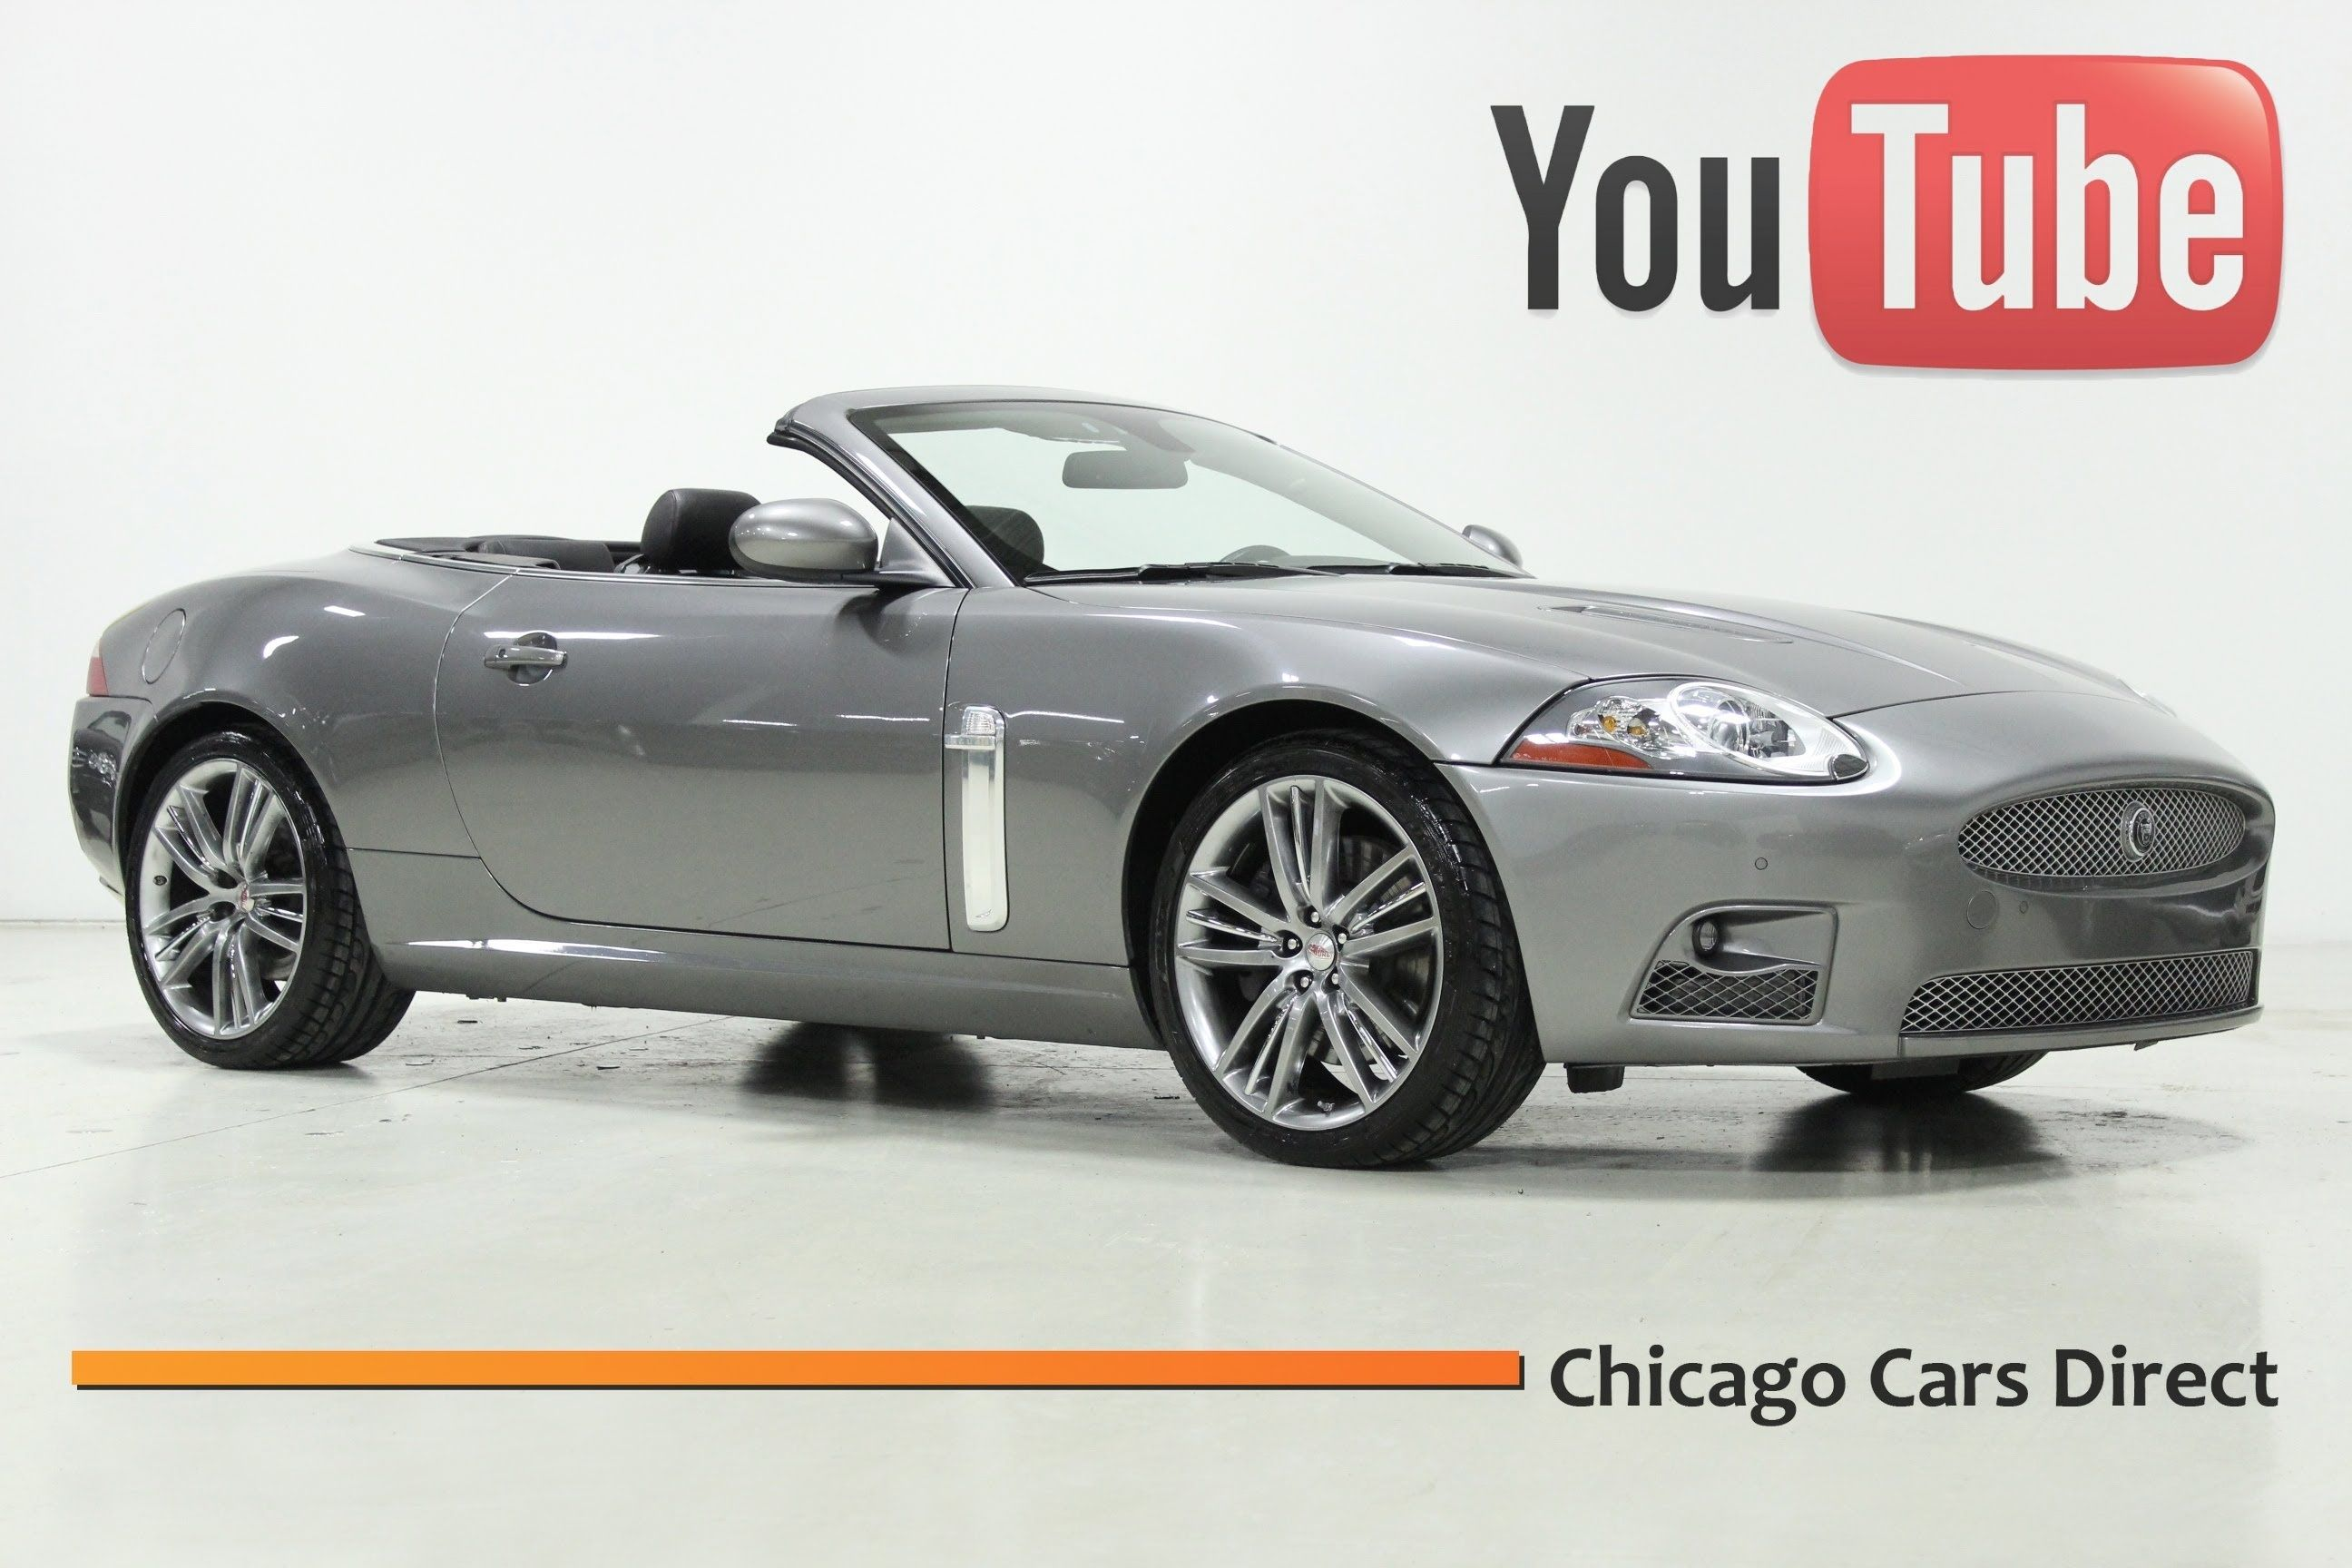 Chicago Cars Direct Presents a 2009 Jaguar XKR Portfolio Convertible